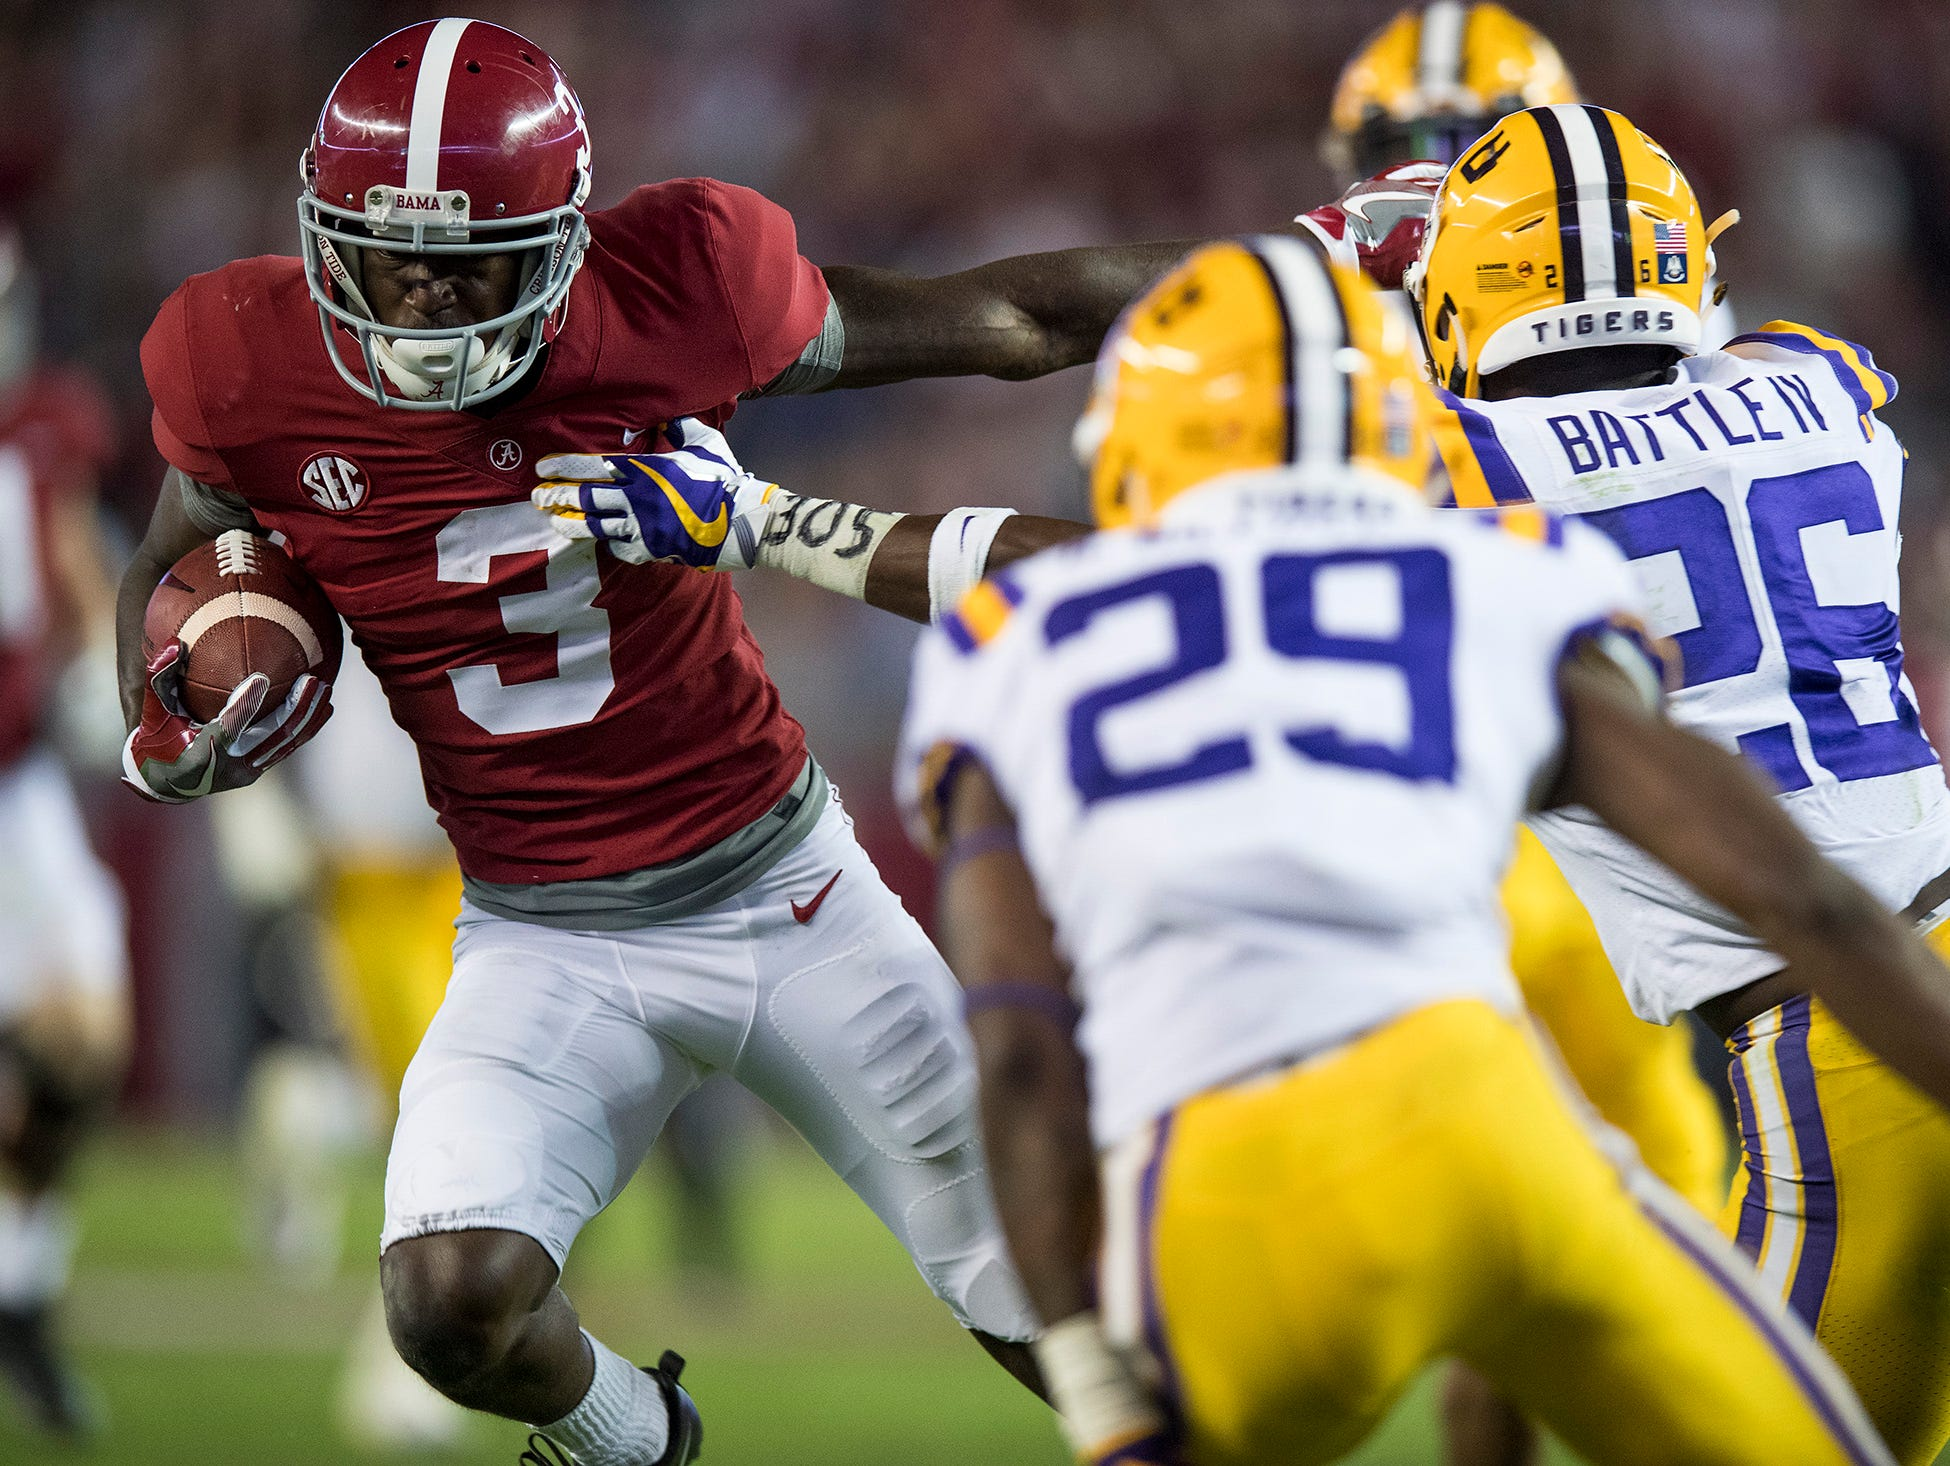 Alabama wide receiver Calvin Ridley (3) against LSU in second half action at Bryant Denny Stadium in Tuscaloosa, Ala. on Saturday November 4, 2017. (Mickey Welsh / Montgomery Advertiser)